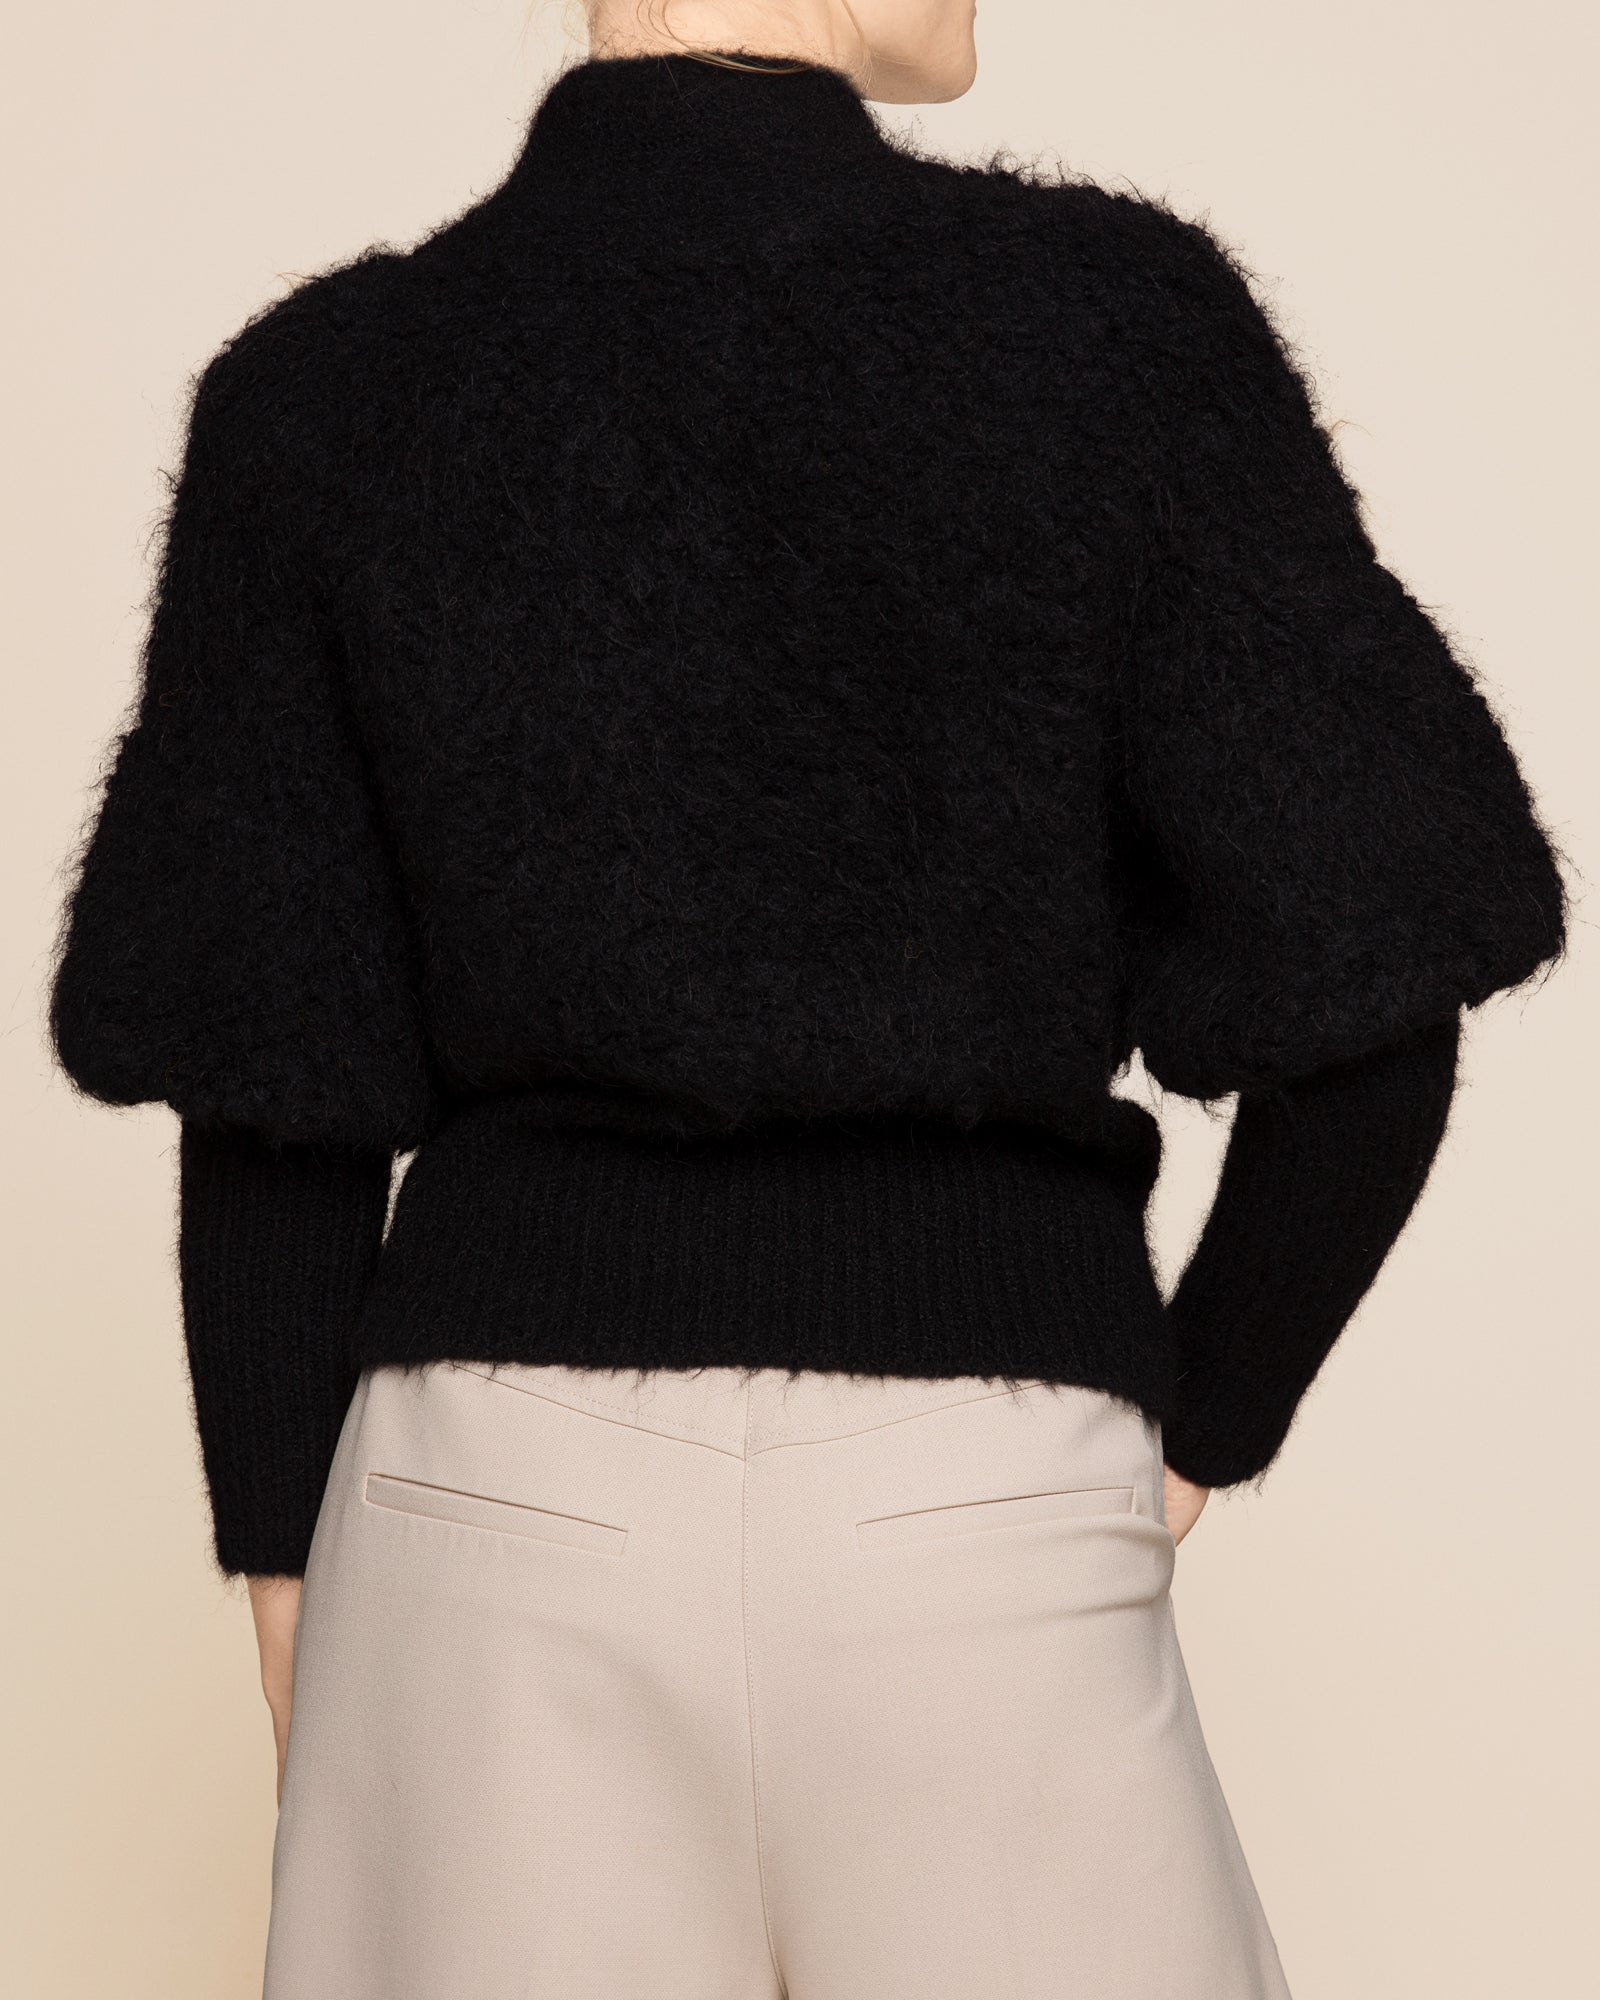 ByTimo | Fluffy Hairy Knit Cardigan